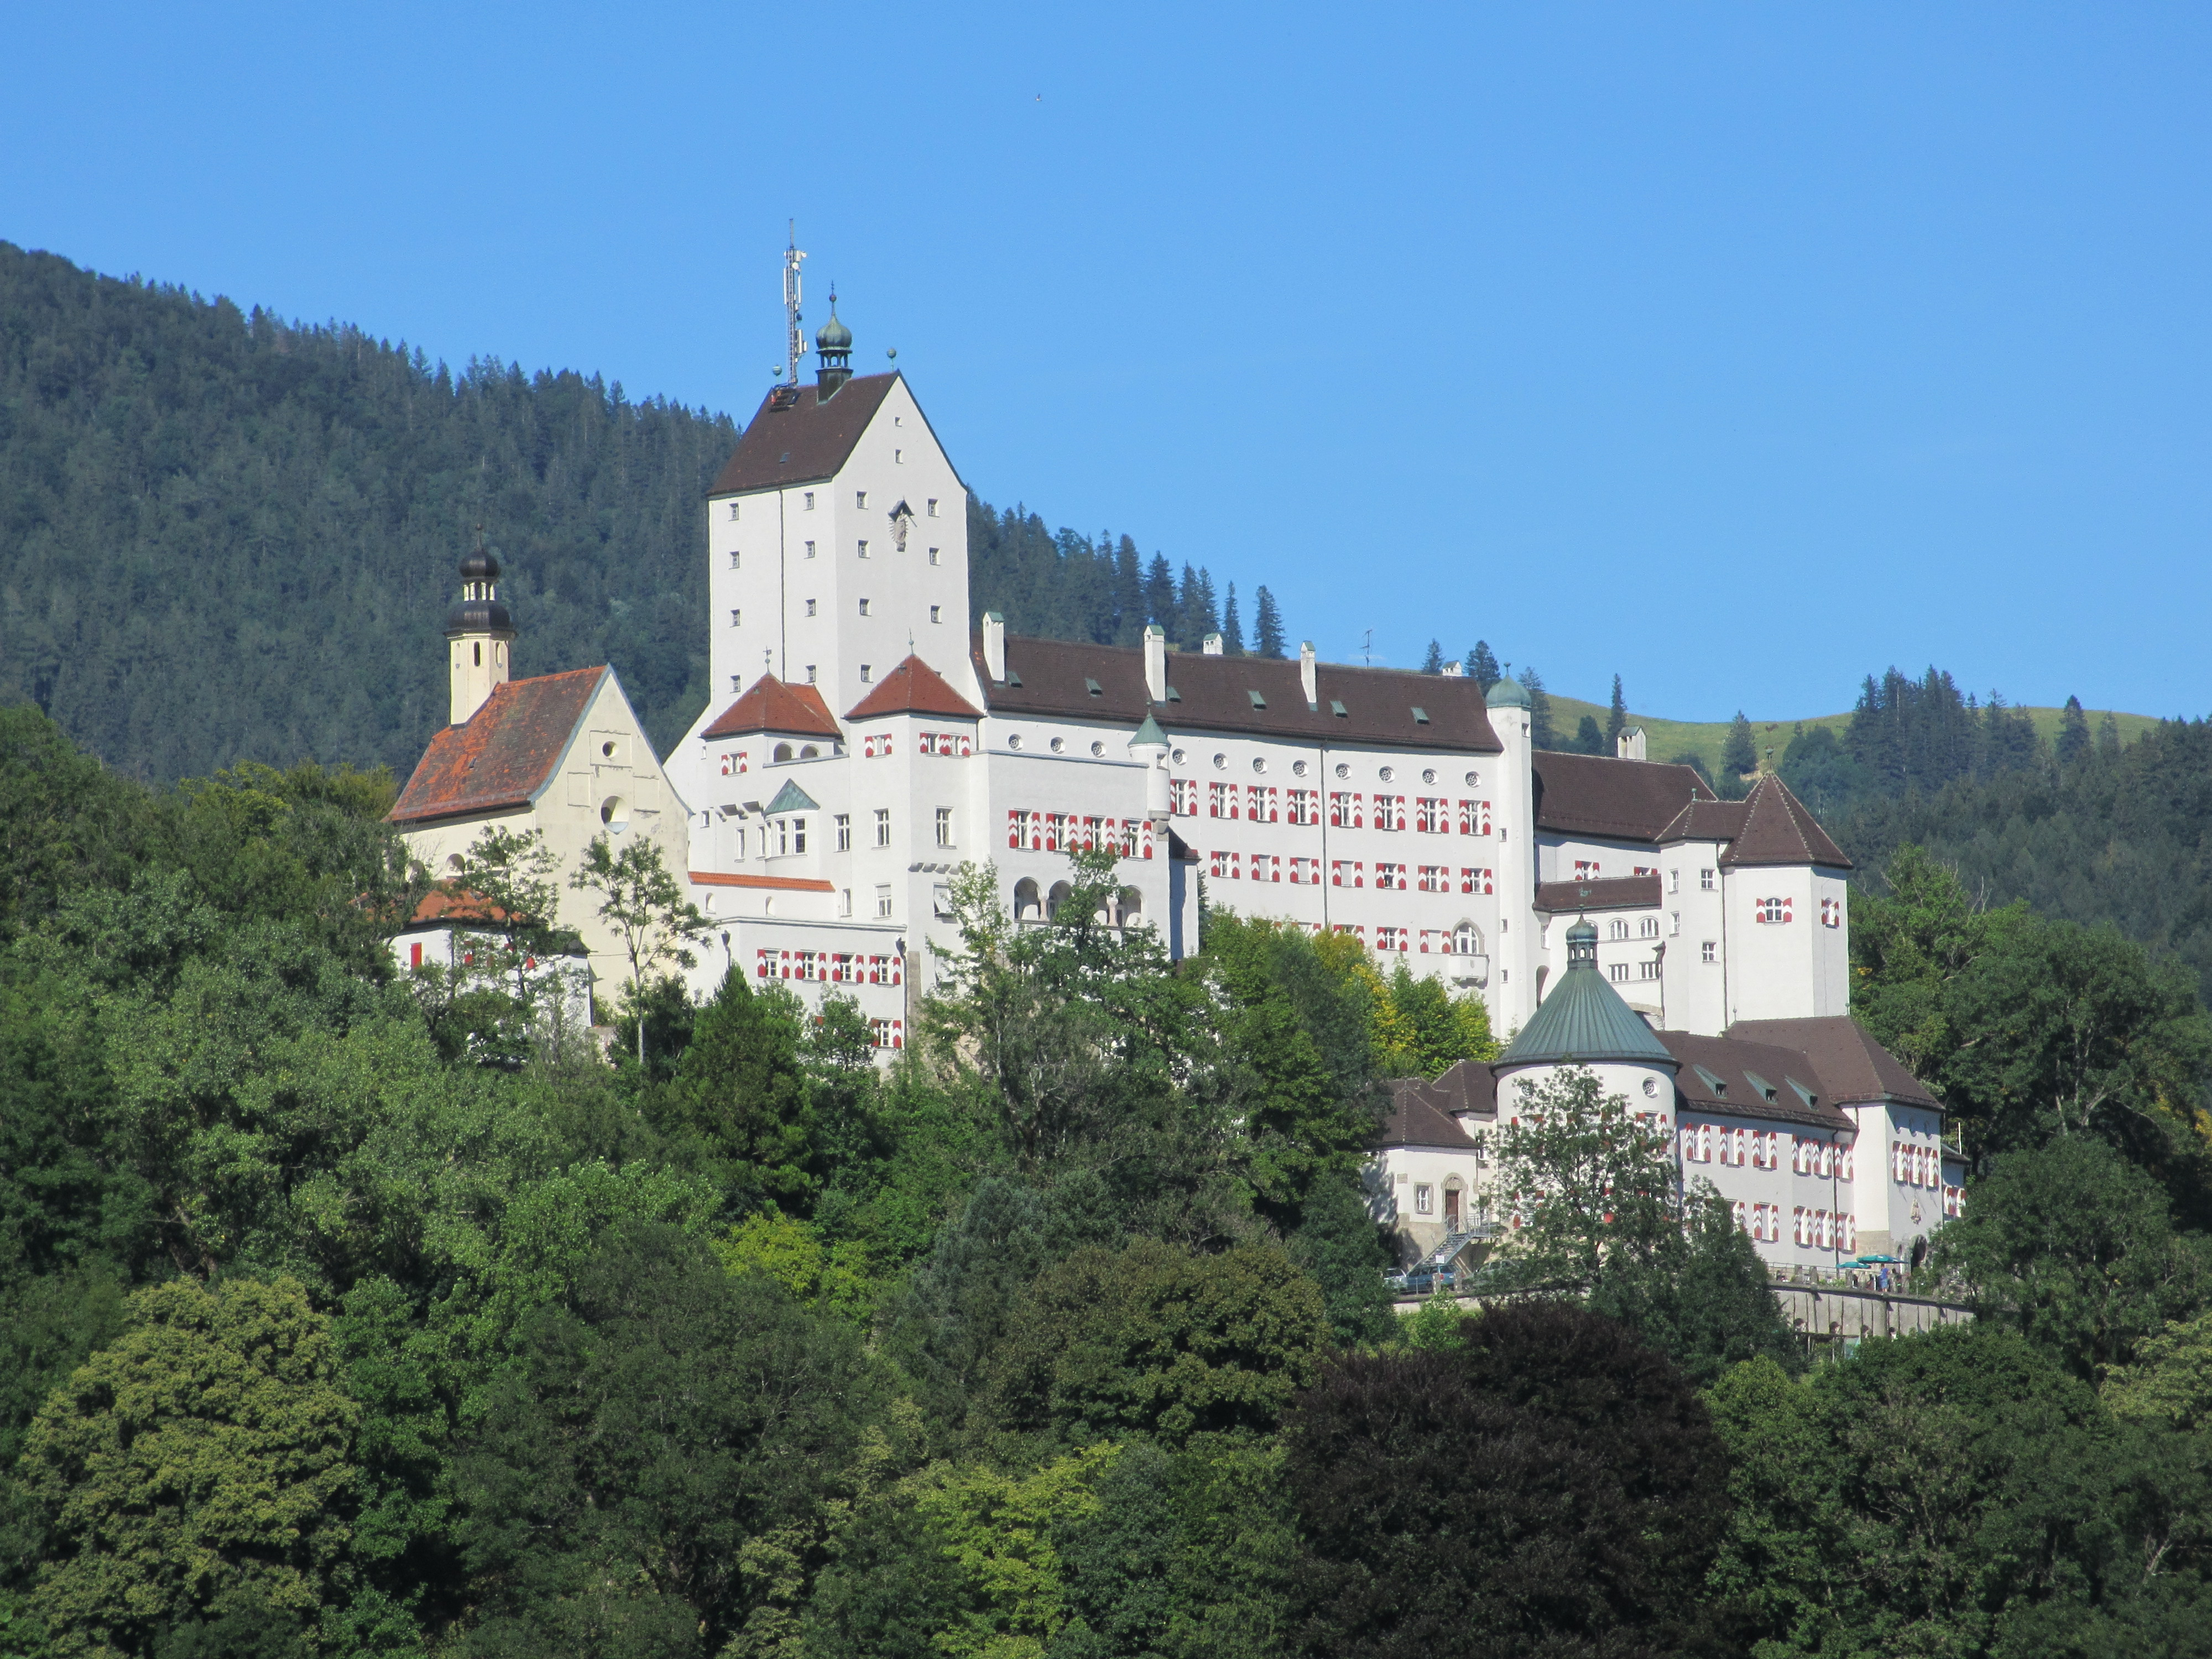 Aschau im Chiemgau Germany  City new picture : Aschau im Chiemgau is a municipality in the district of Rosenheim in ...